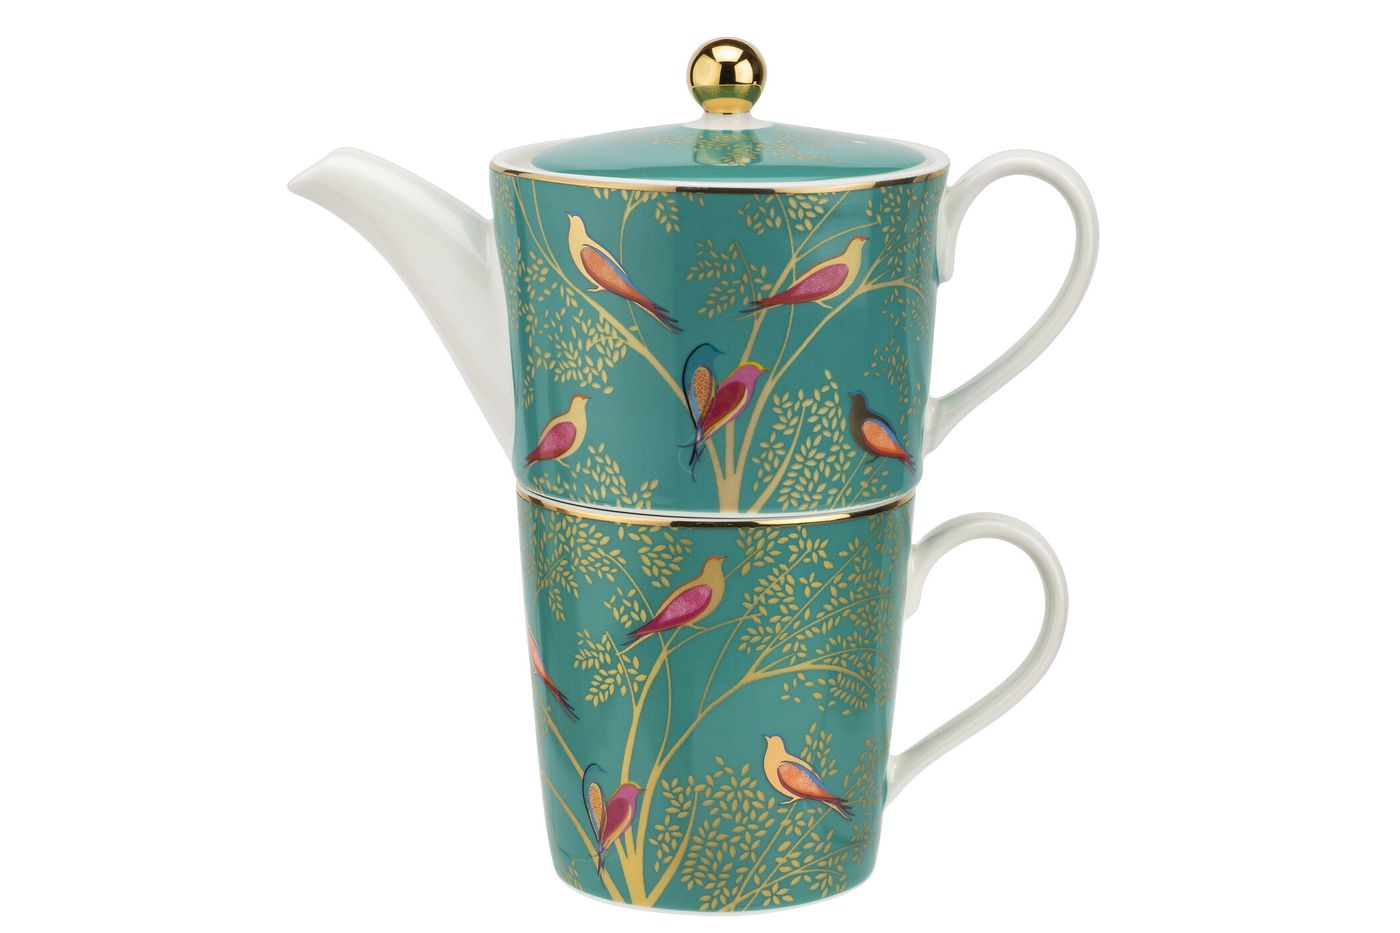 Sara Miller London for Portmeirion Chelsea Collection Tea For One Green 0.35l thumb 1